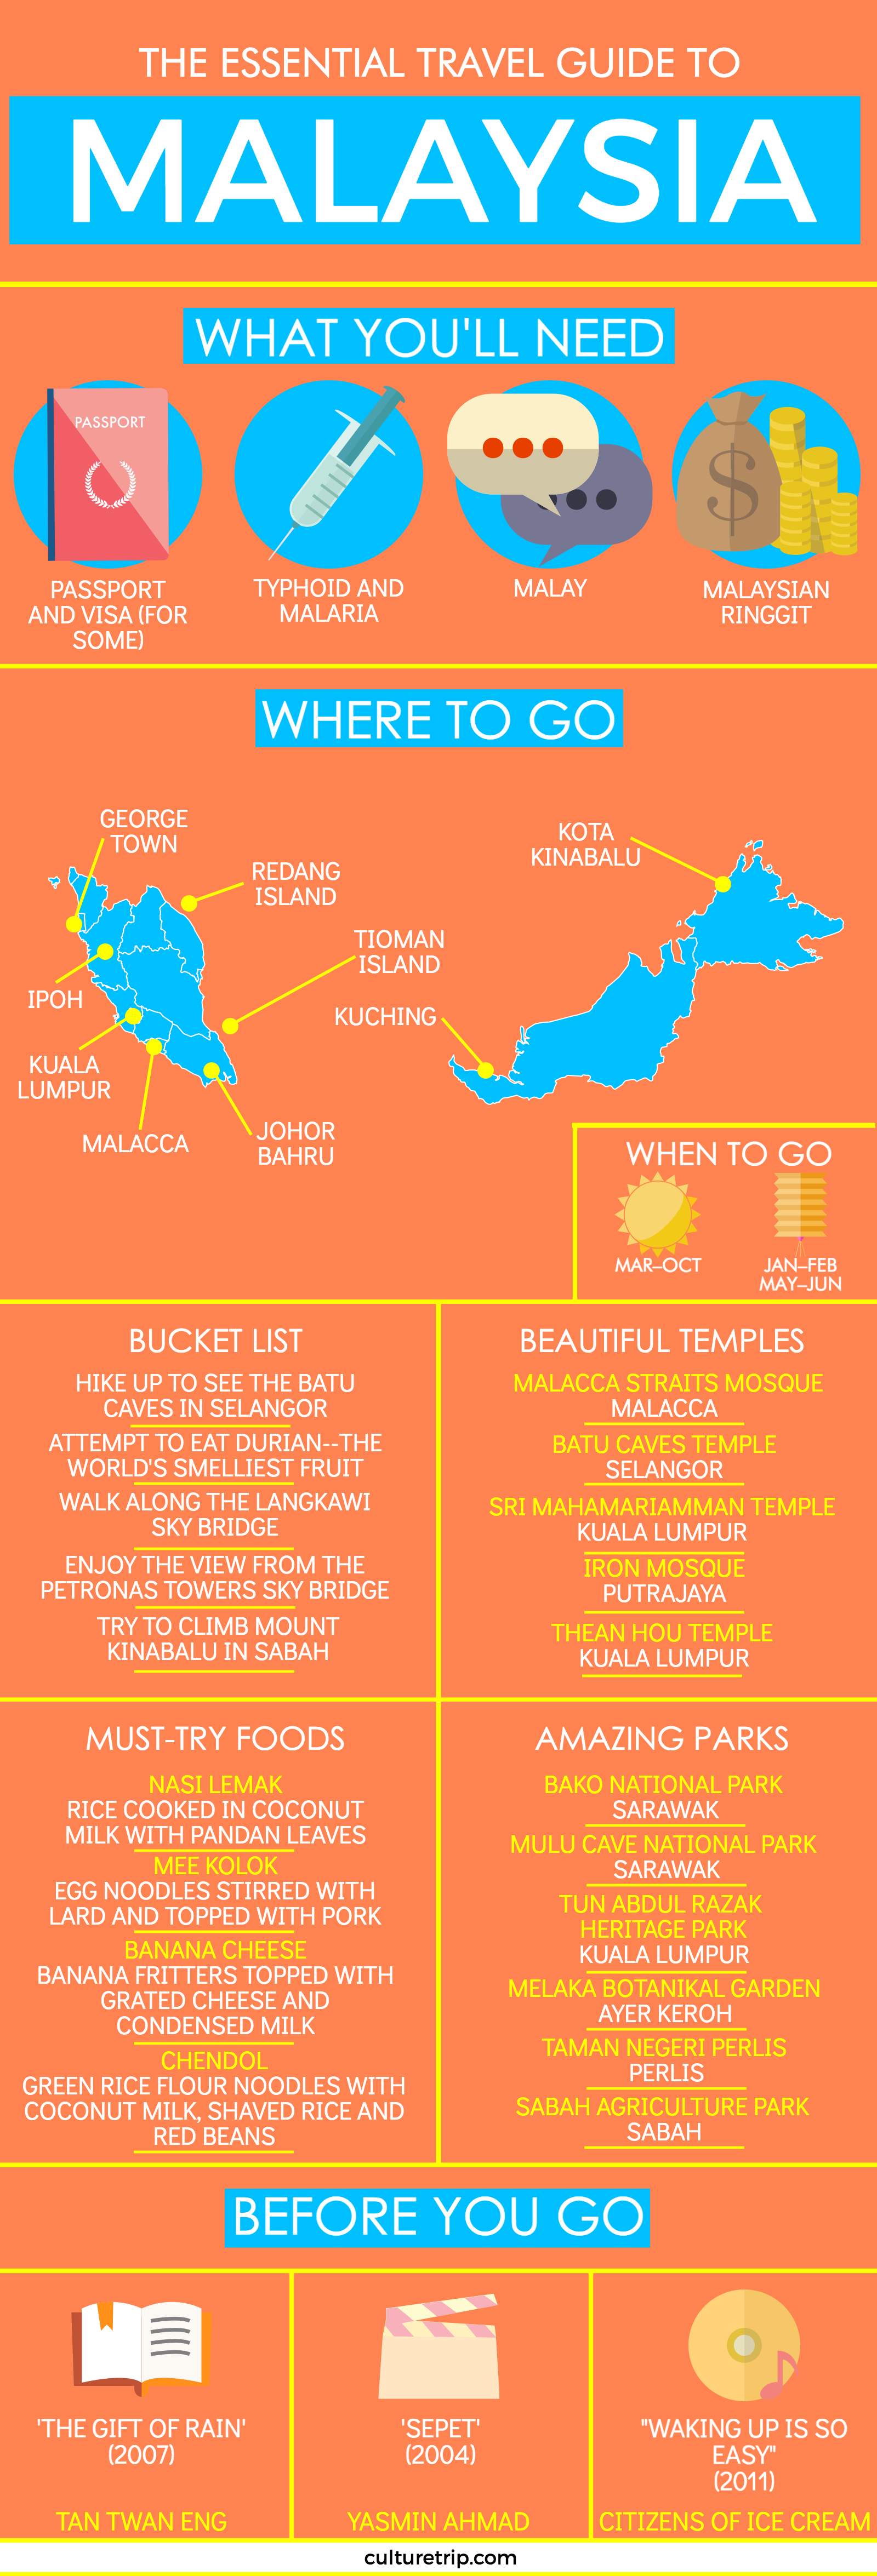 The Essential Travel Guide to Malaysia (Infographic)